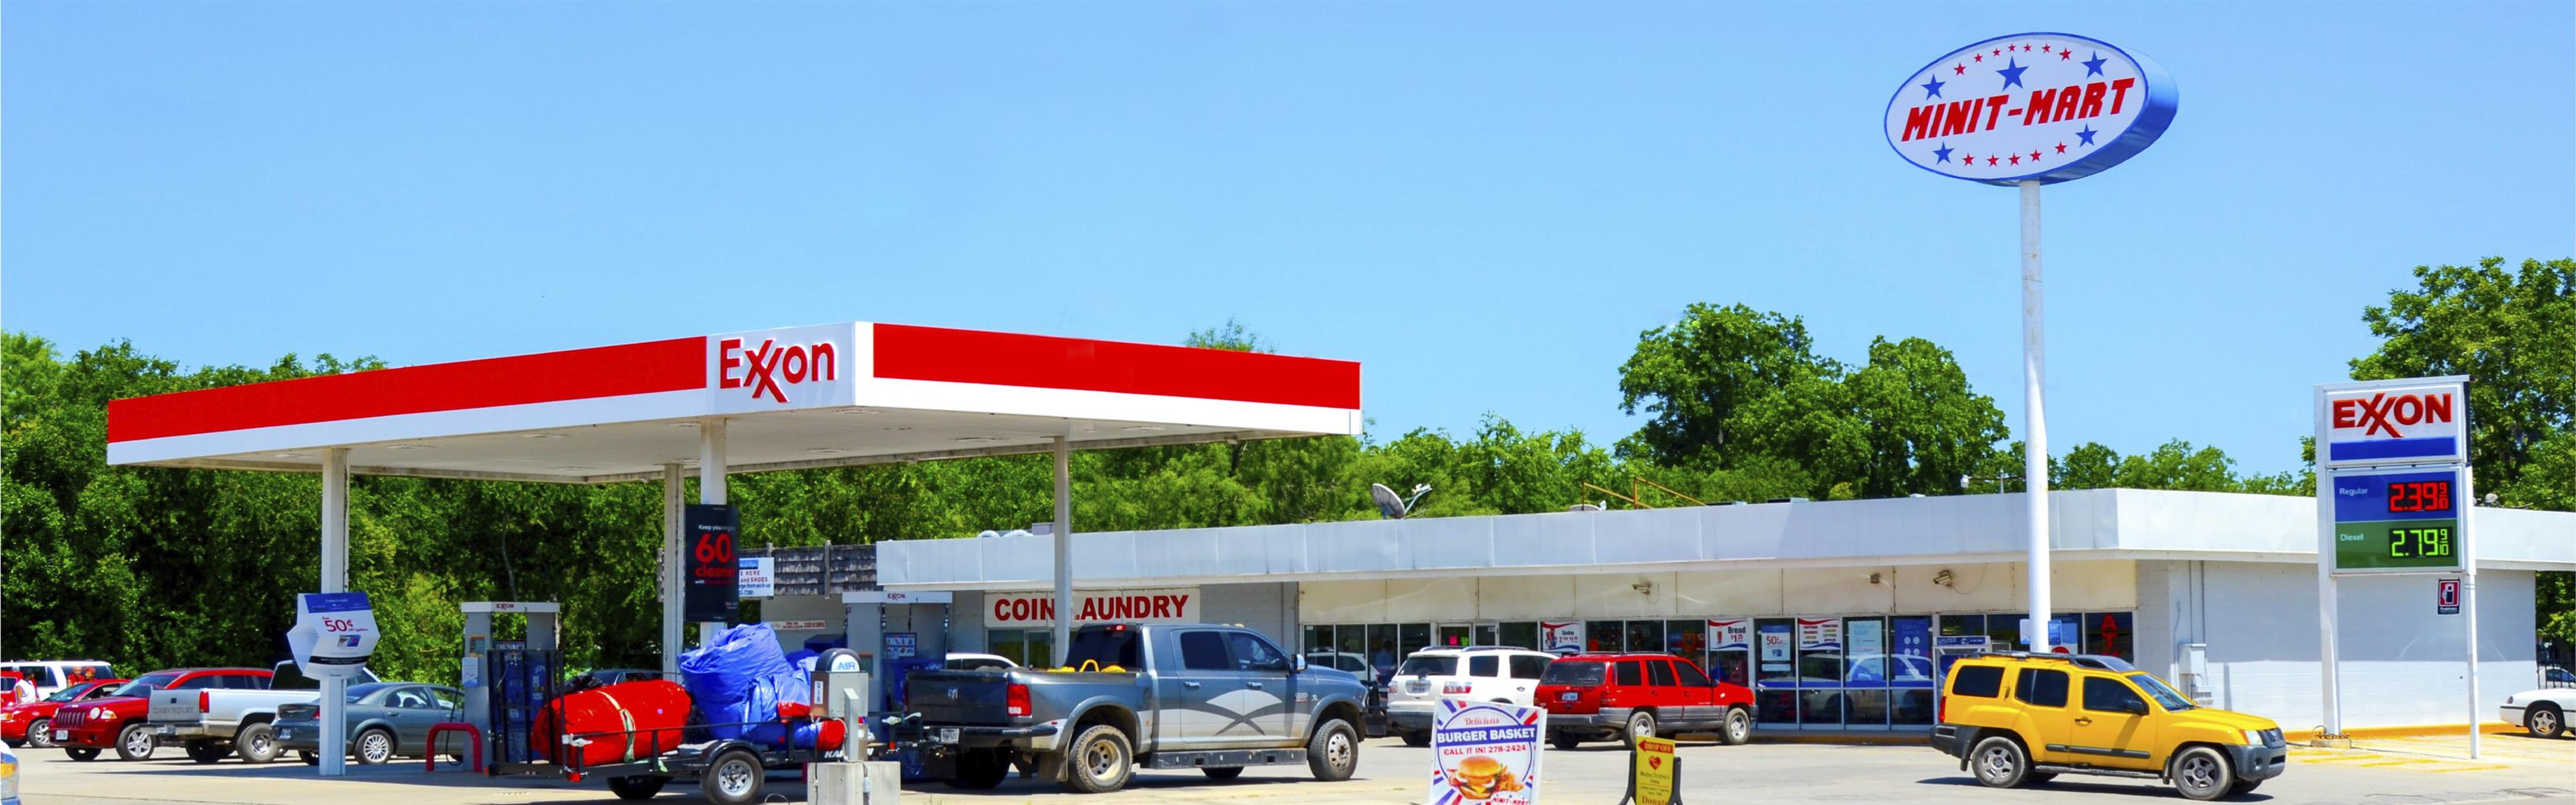 exxon gas station in front of the minit mart